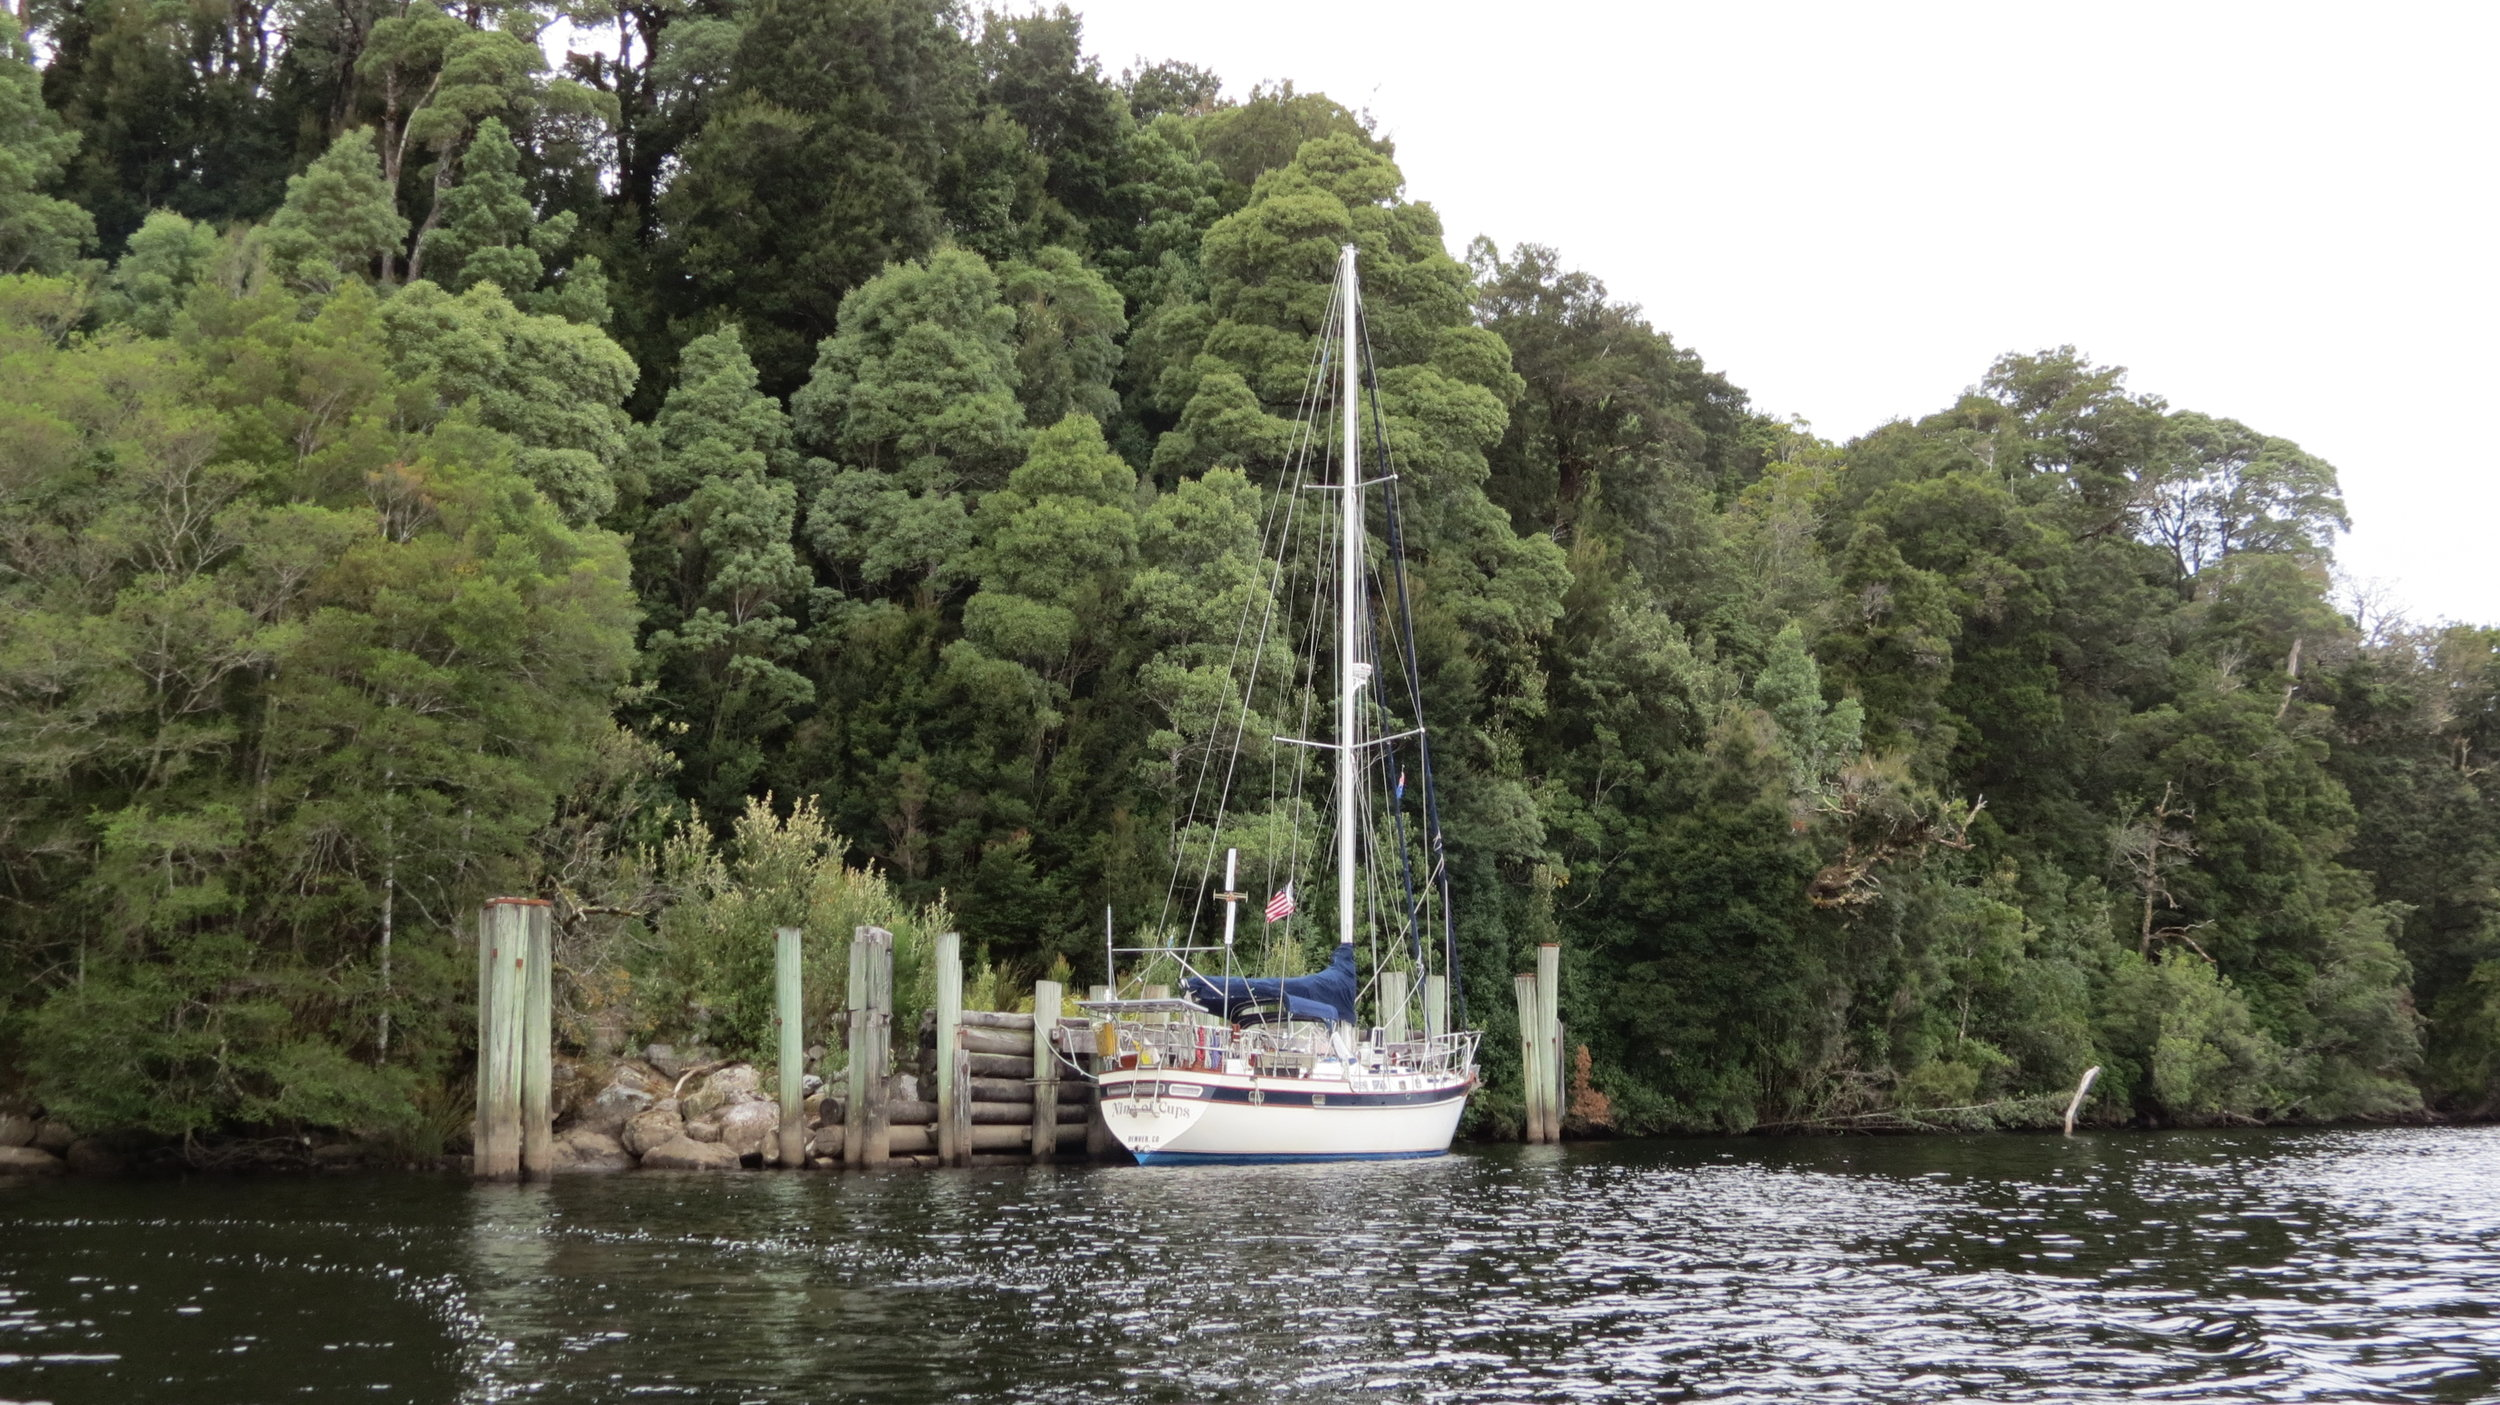 Moored up the Gordon River